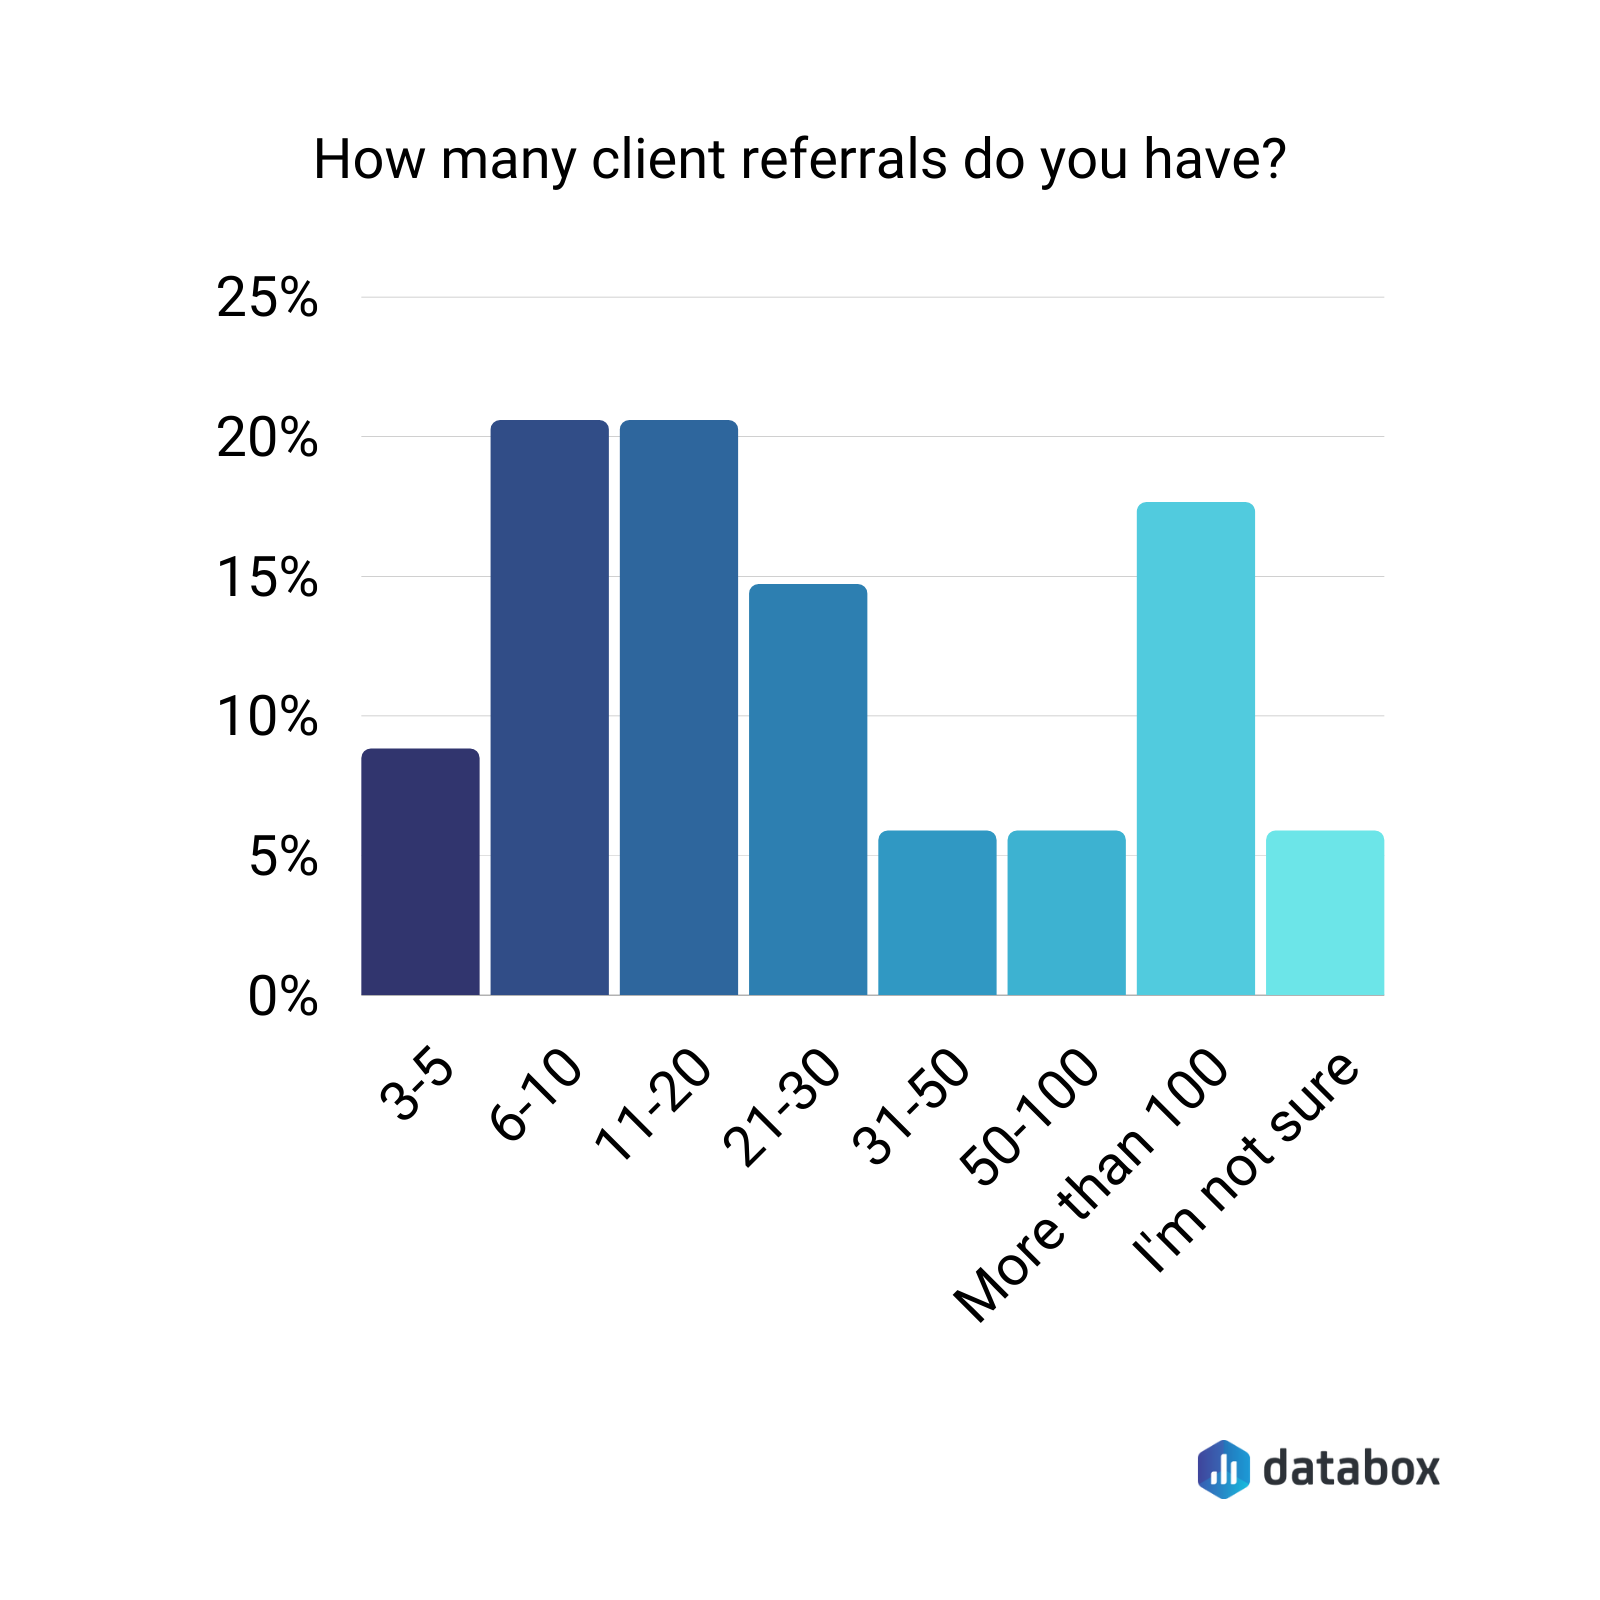 How many client referrals do you have?